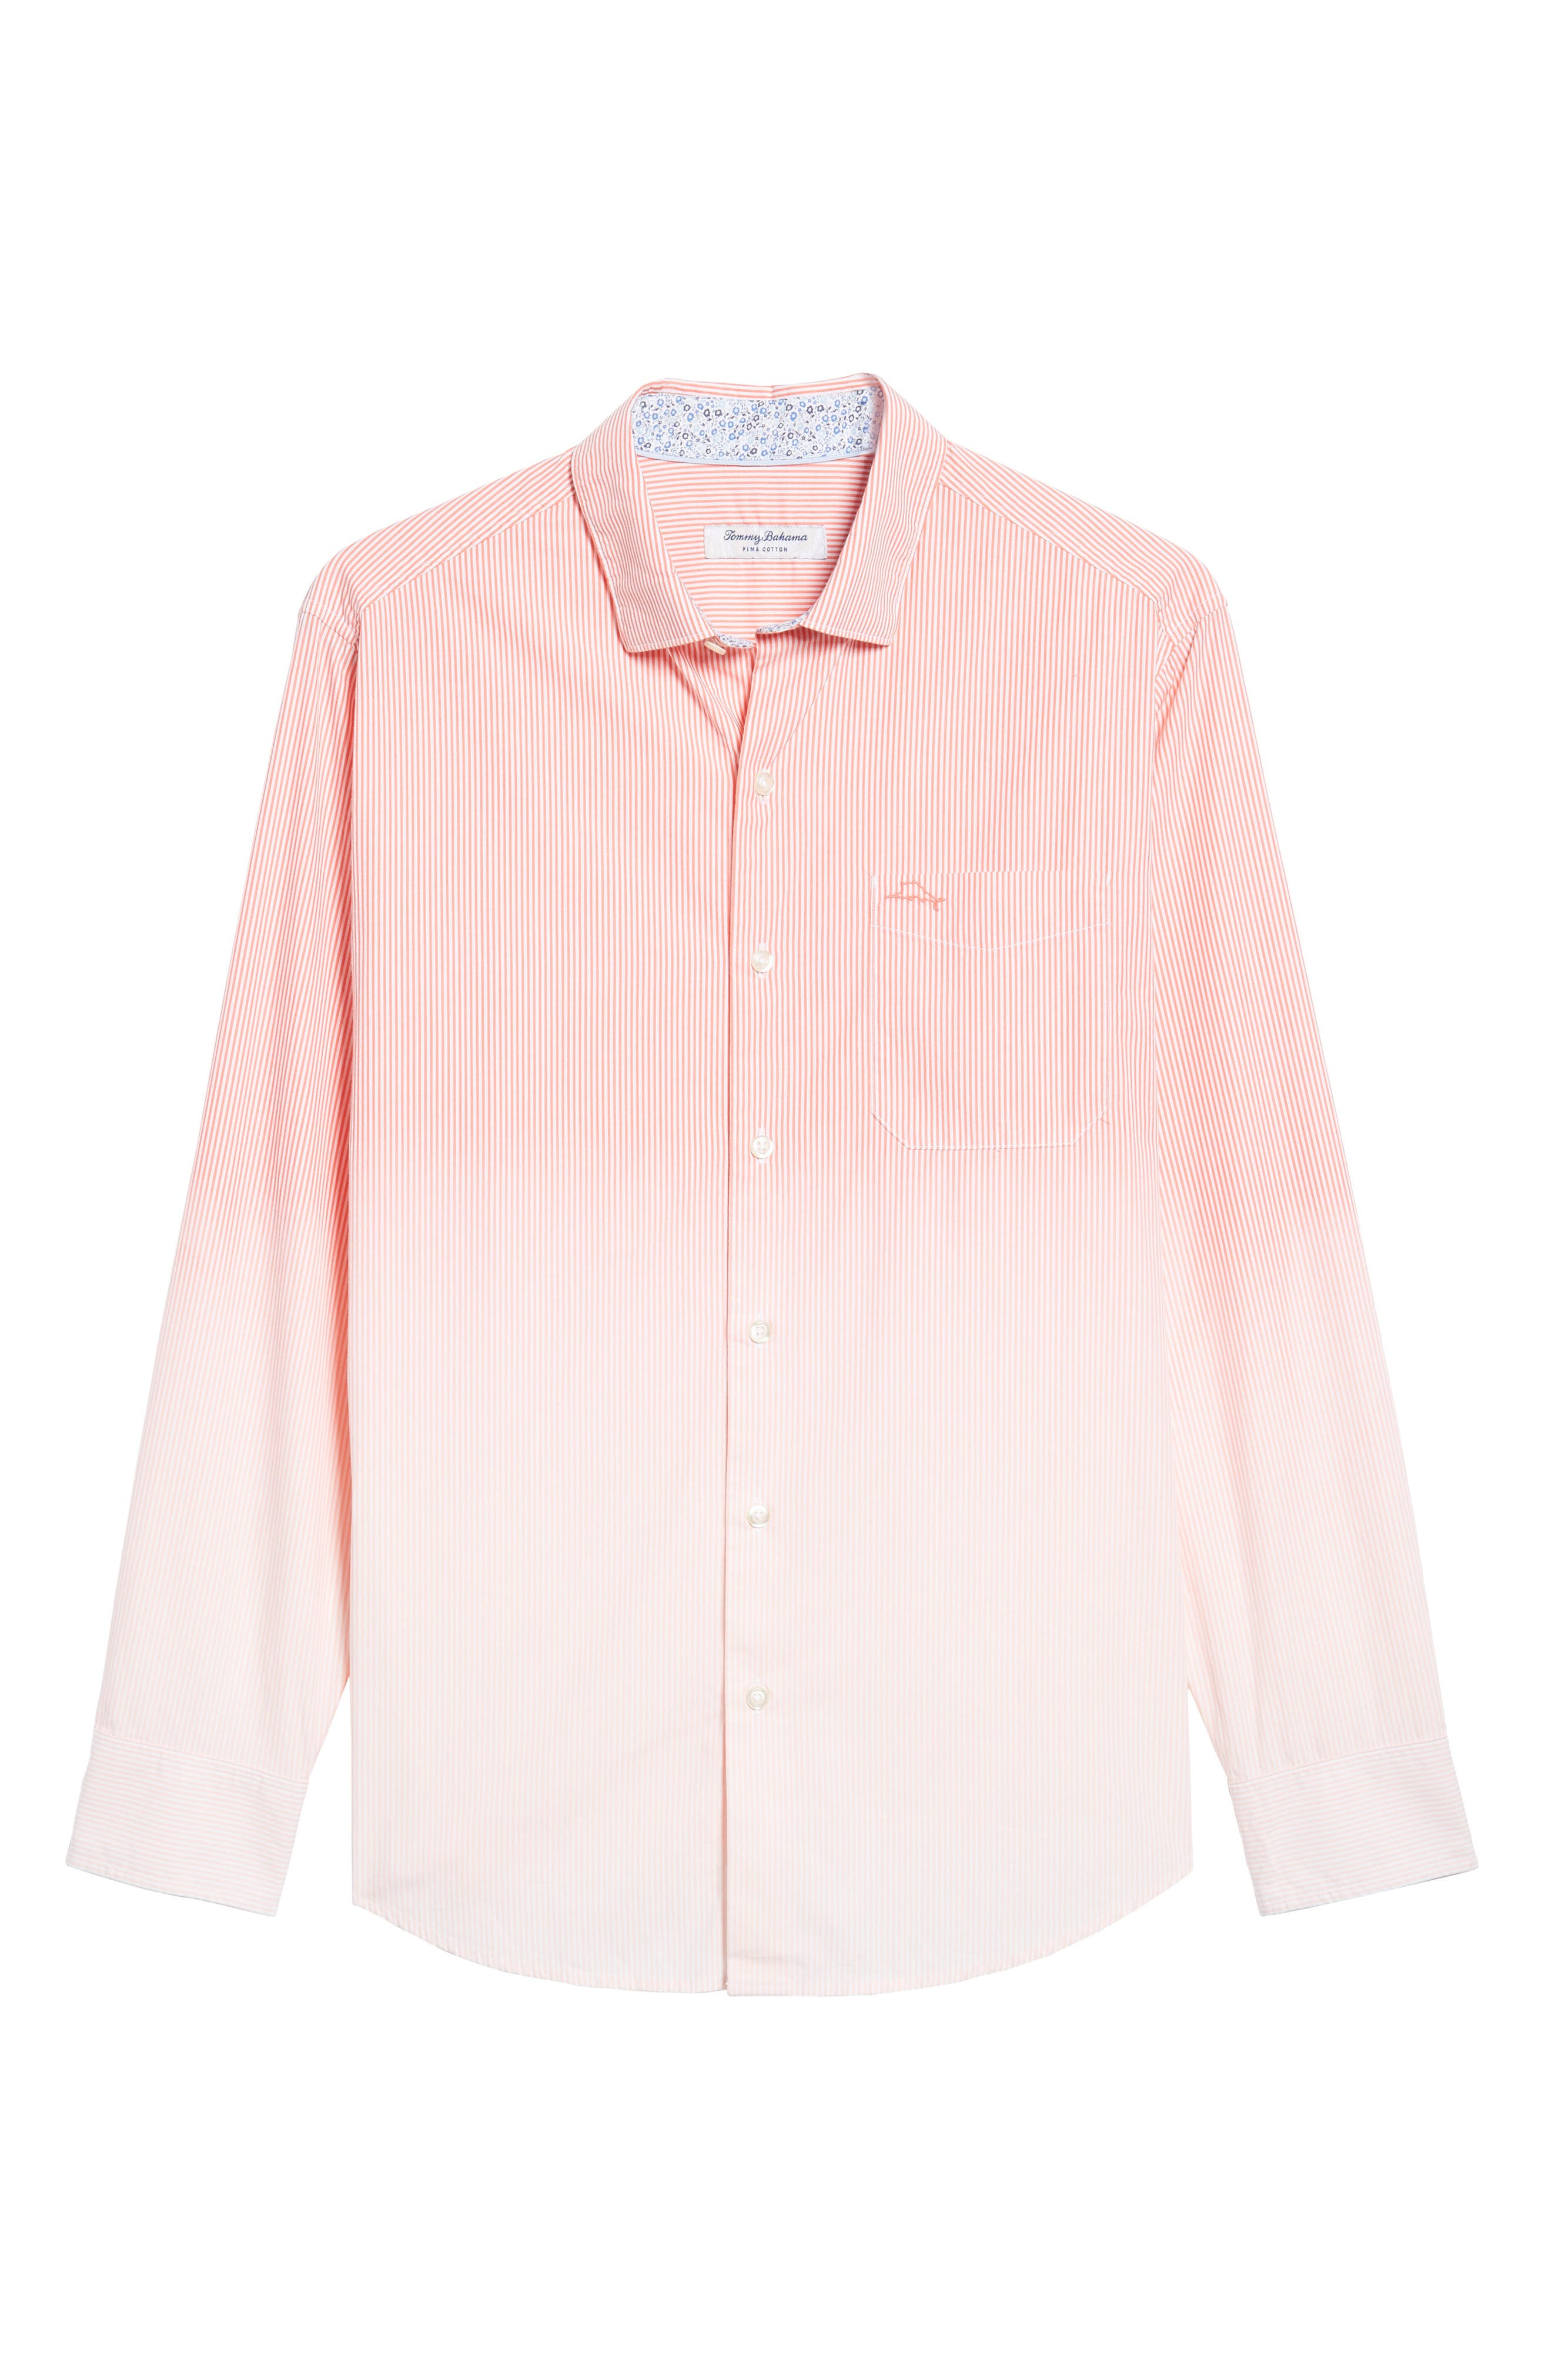 Fadeaway Beach Sport Shirt,                             Alternate thumbnail 6, color,                             950